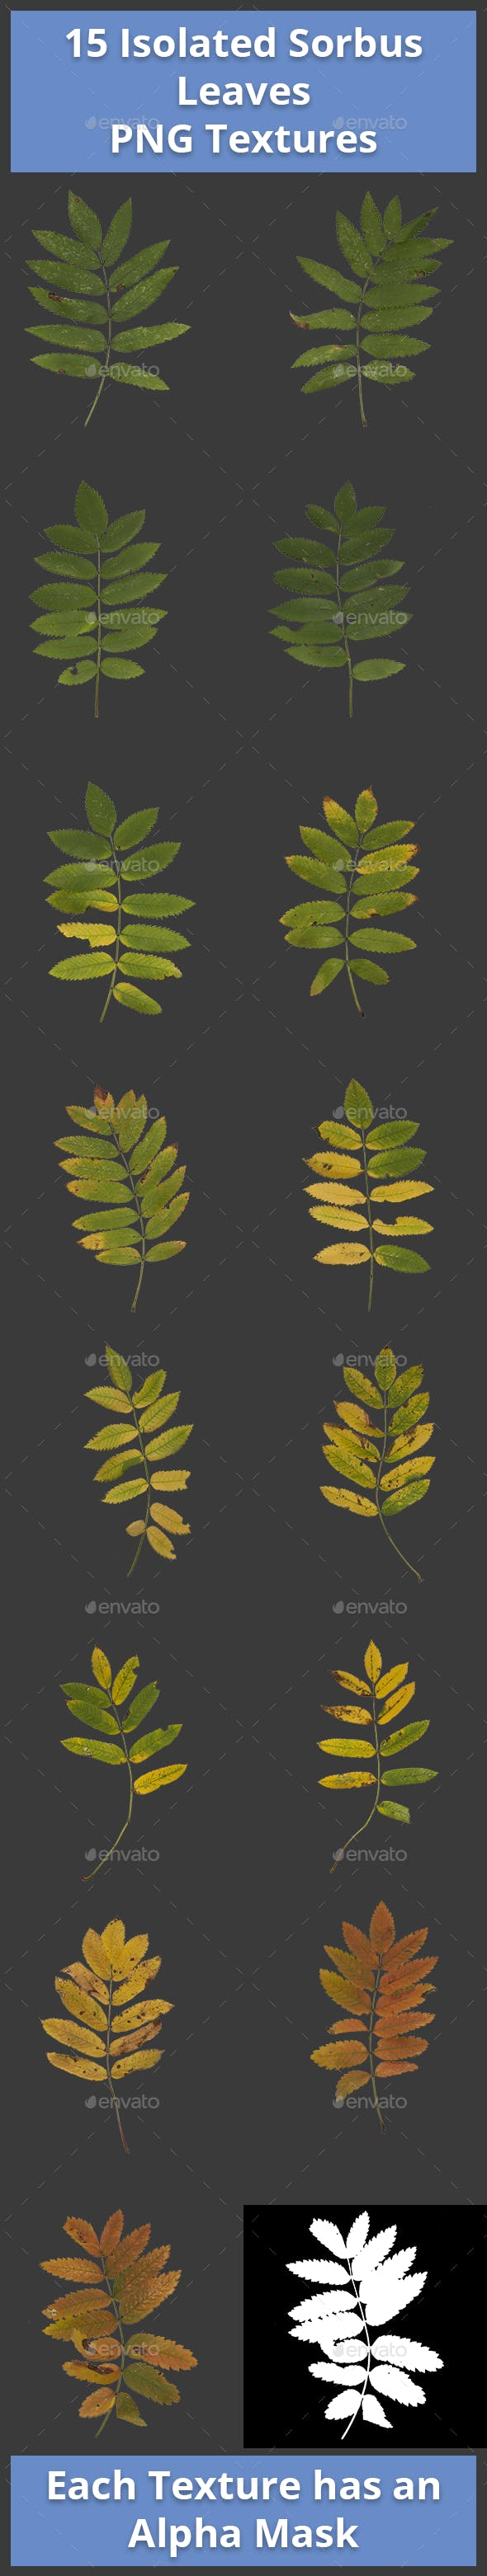 Pack of 15 Isolated Sorbus Leaves Textures - 3DOcean Item for Sale